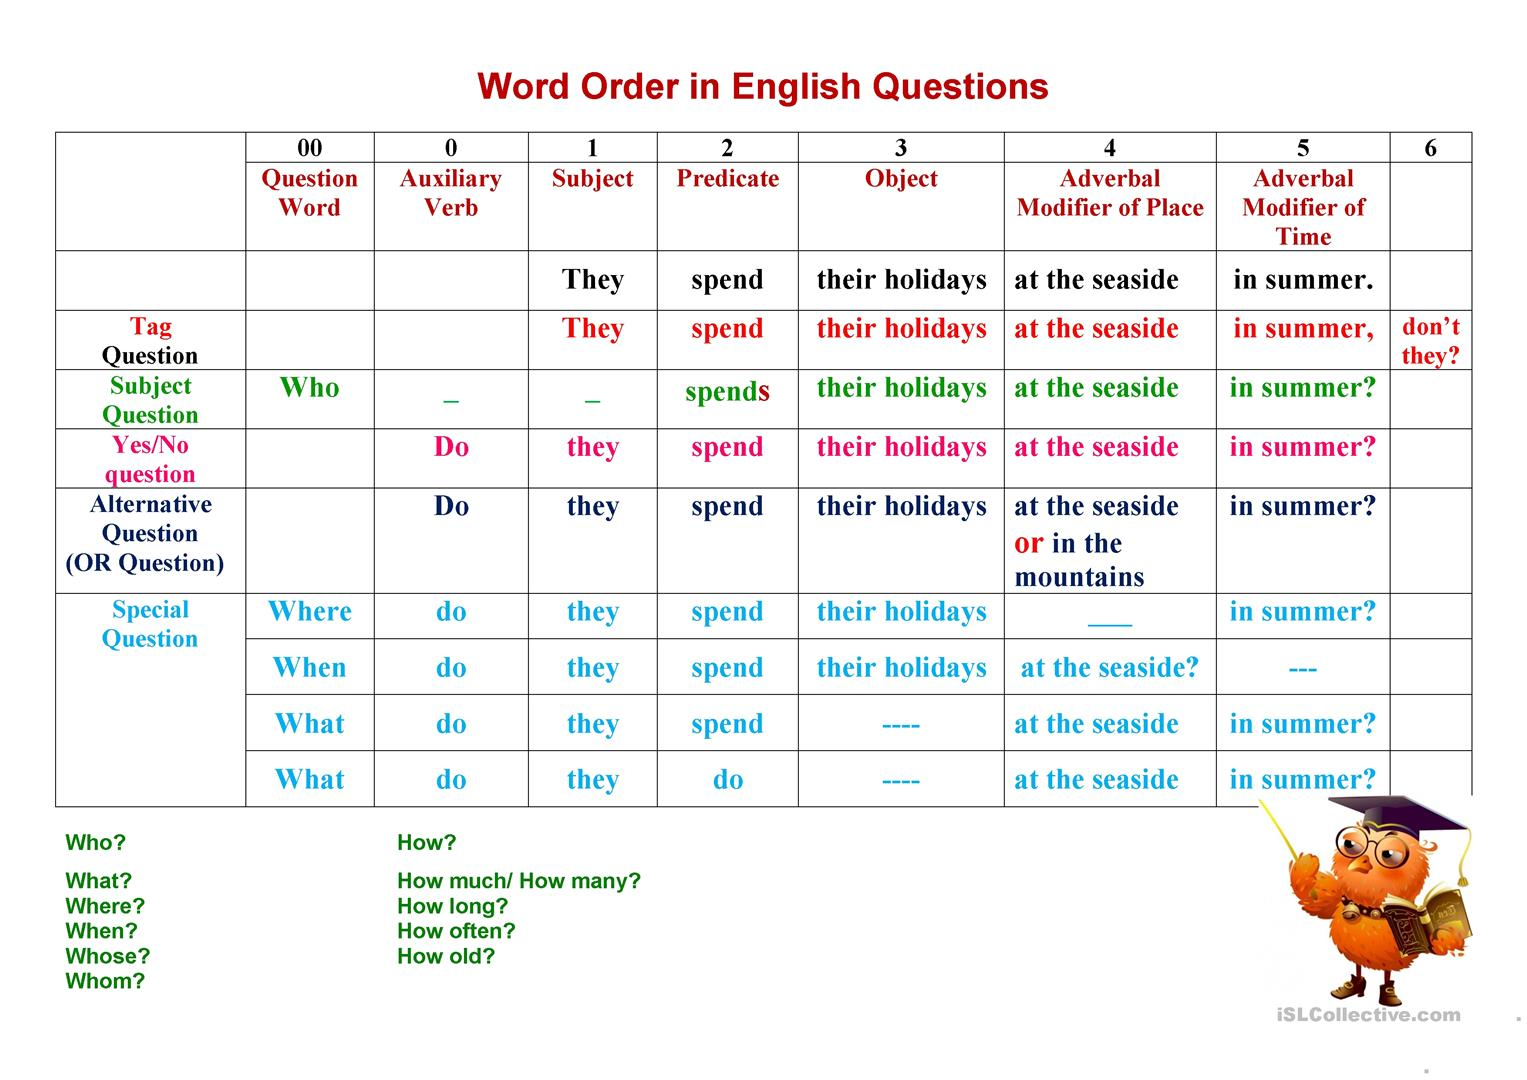 Types Of Questions Word Order In An English Question